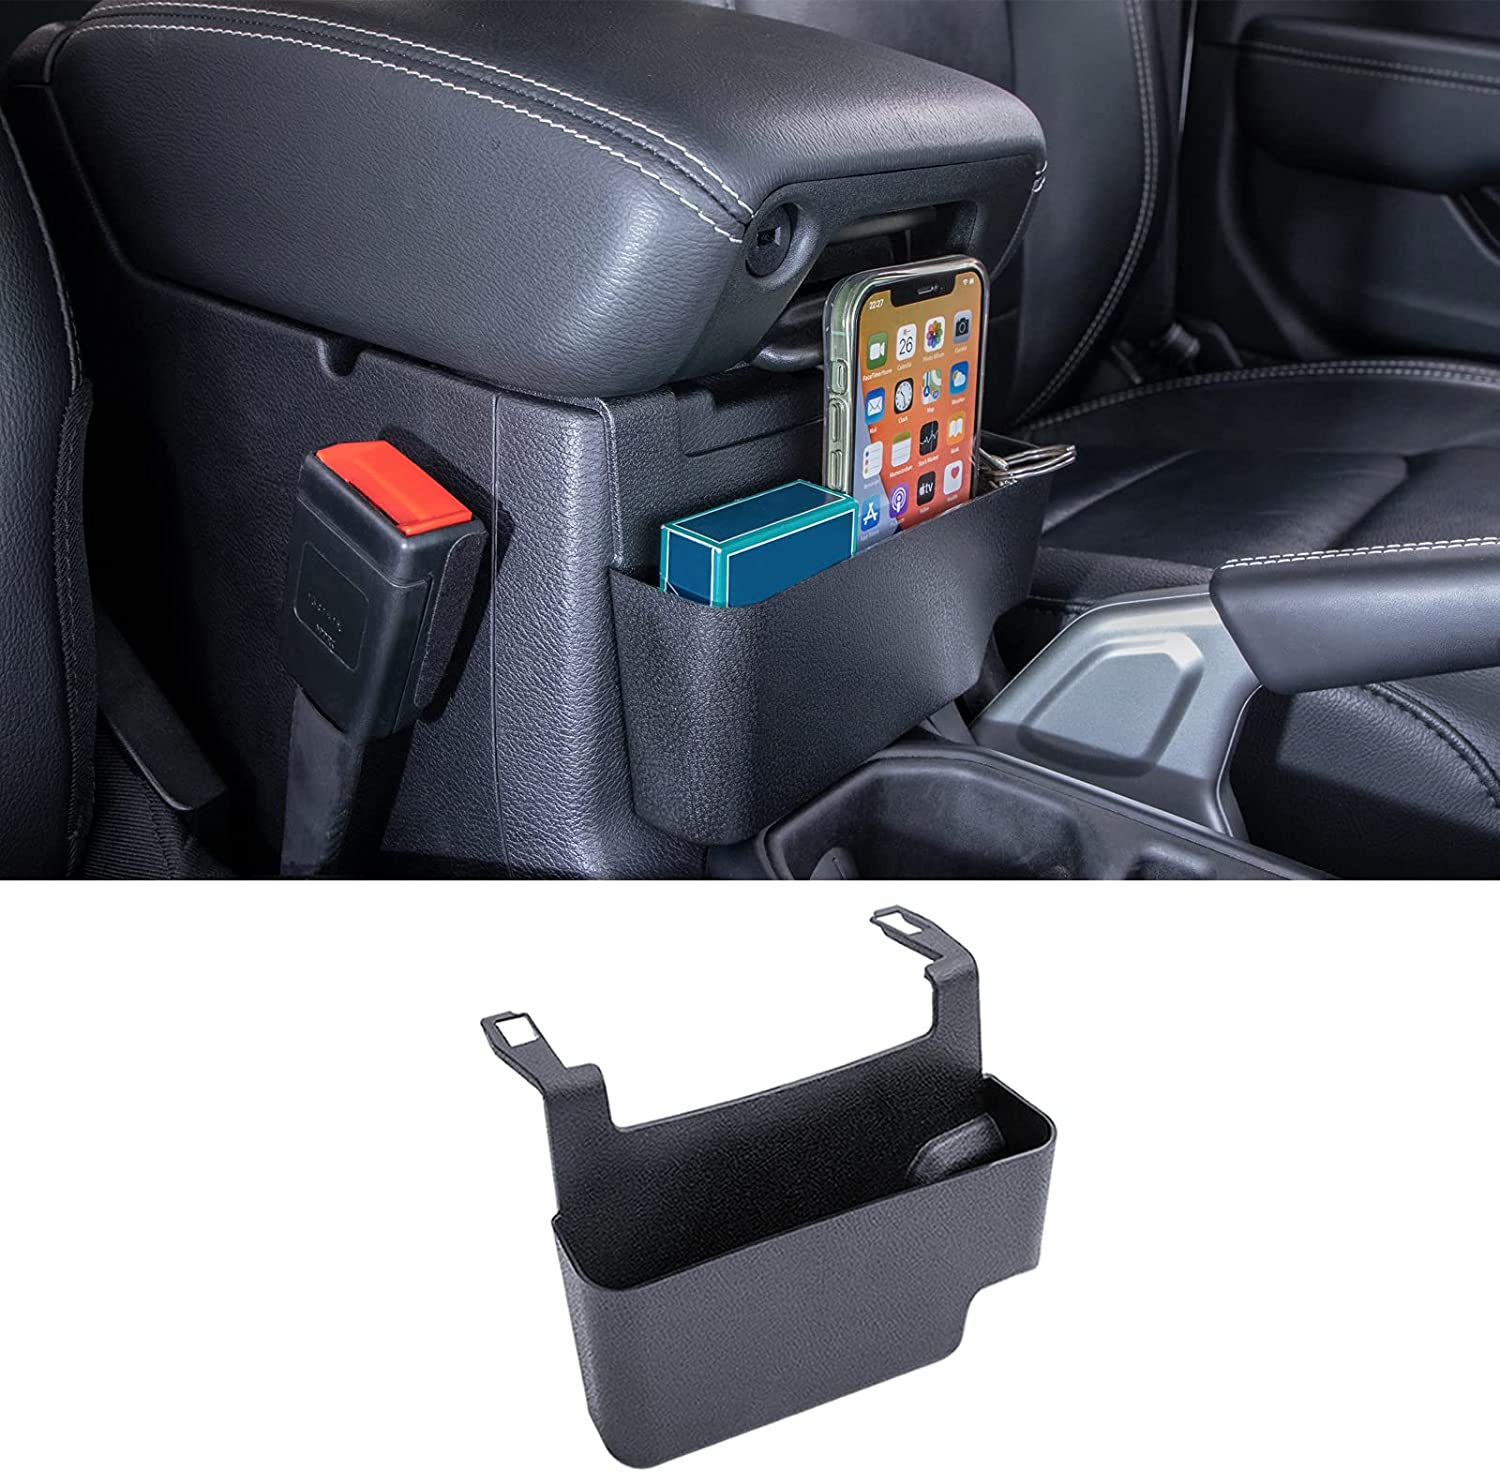 Center Console Hanging Box Compatible with Jeep Wrangler JL/JLU 2018 2019 2020 2021 and Jeep Gladiator JT Truck 2020 2021 Organizer Tray Armrest Storage Accessories (Not for JK/JKU)